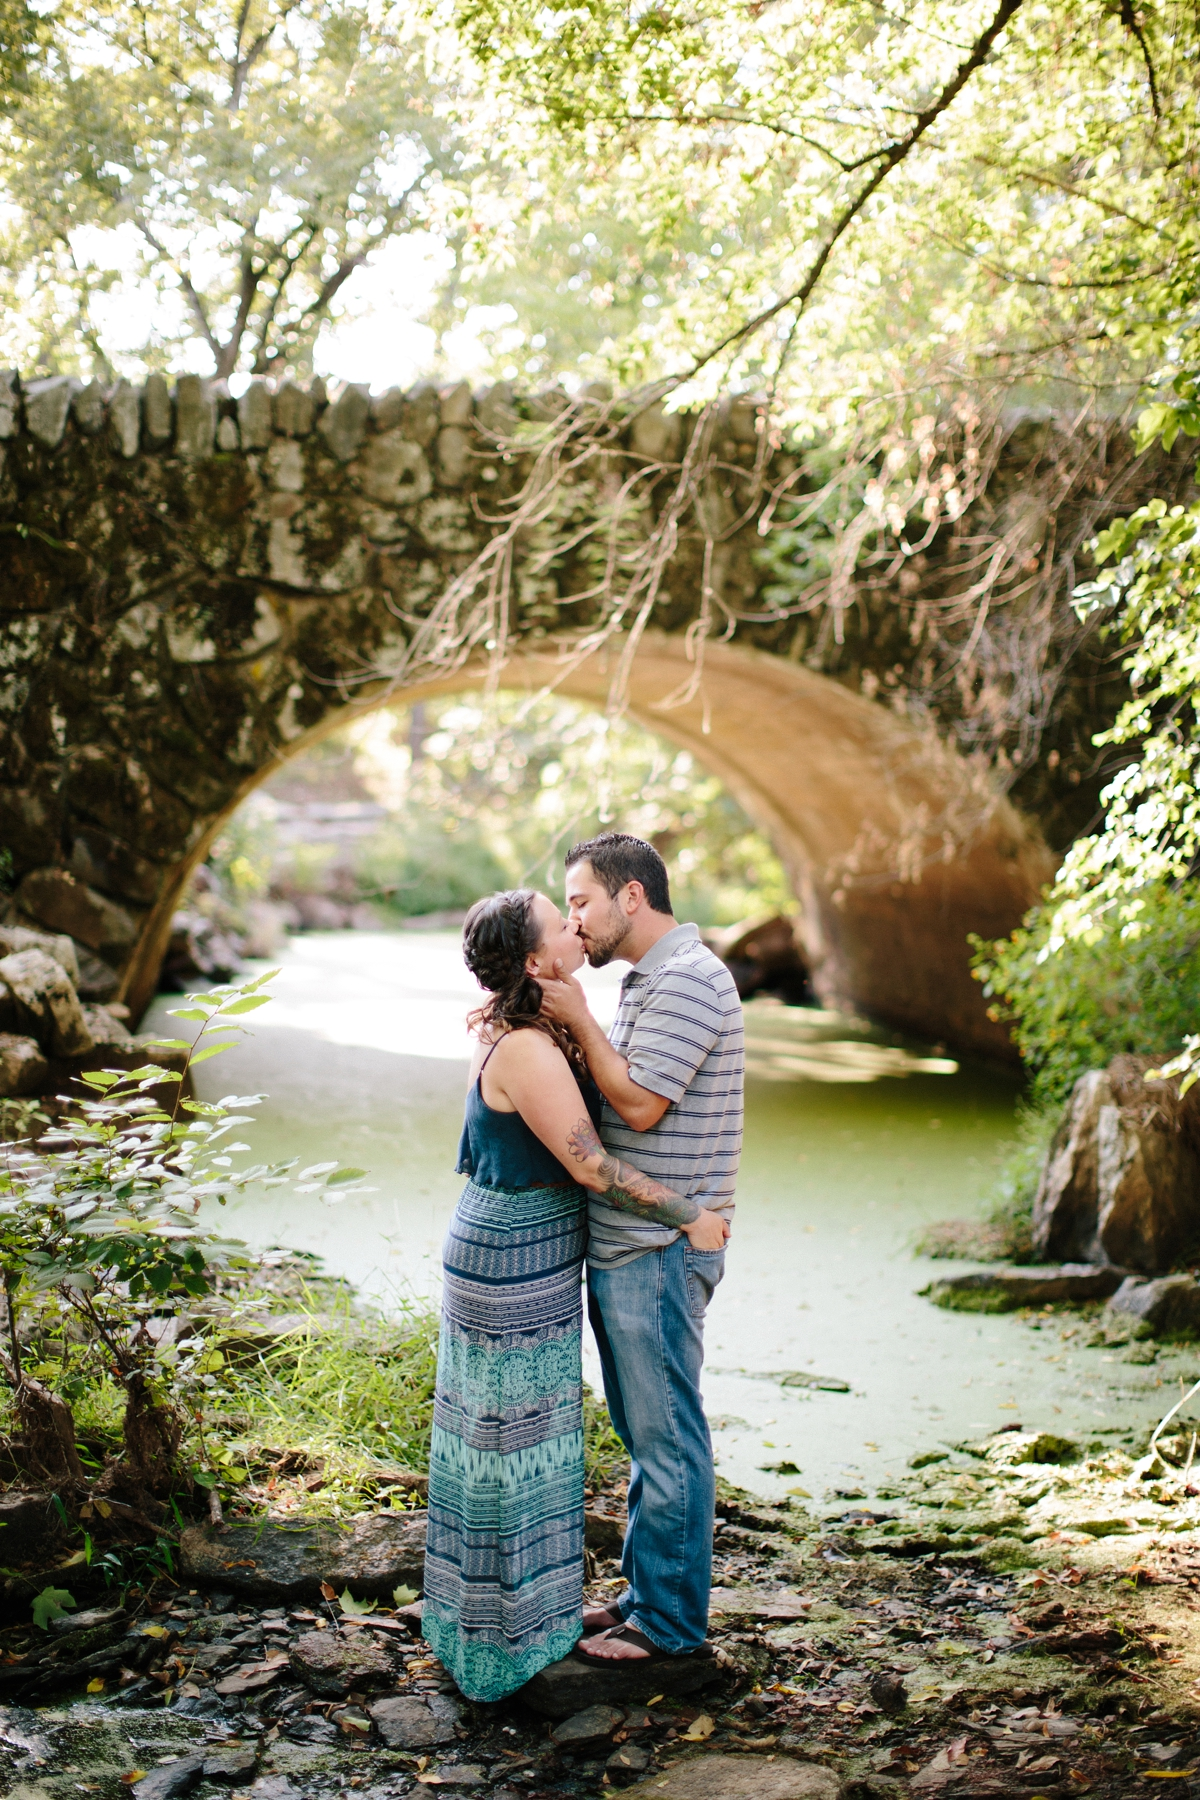 destination_wedding_photographer_estate_engagement_session_0009.jpg